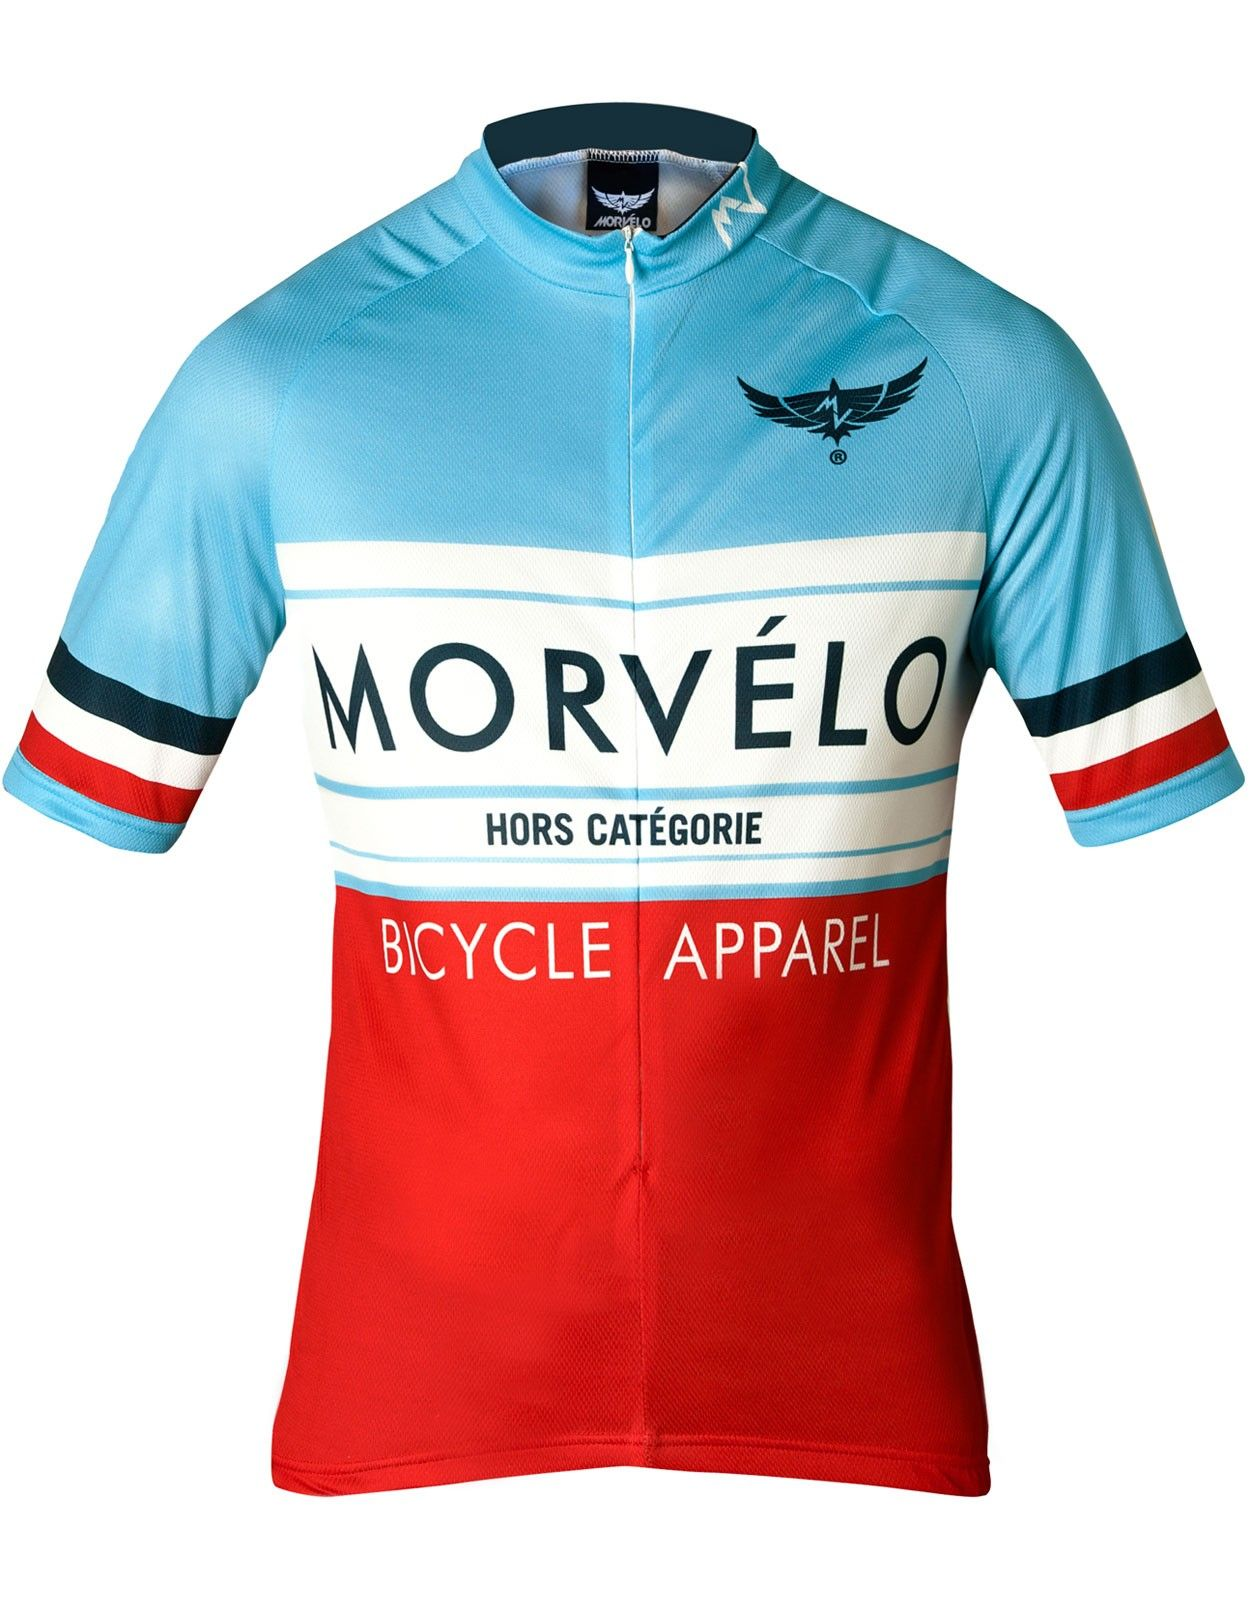 a8acaf602 morvelo-hors-categorie-cycling-jersey-red-1.jpg (